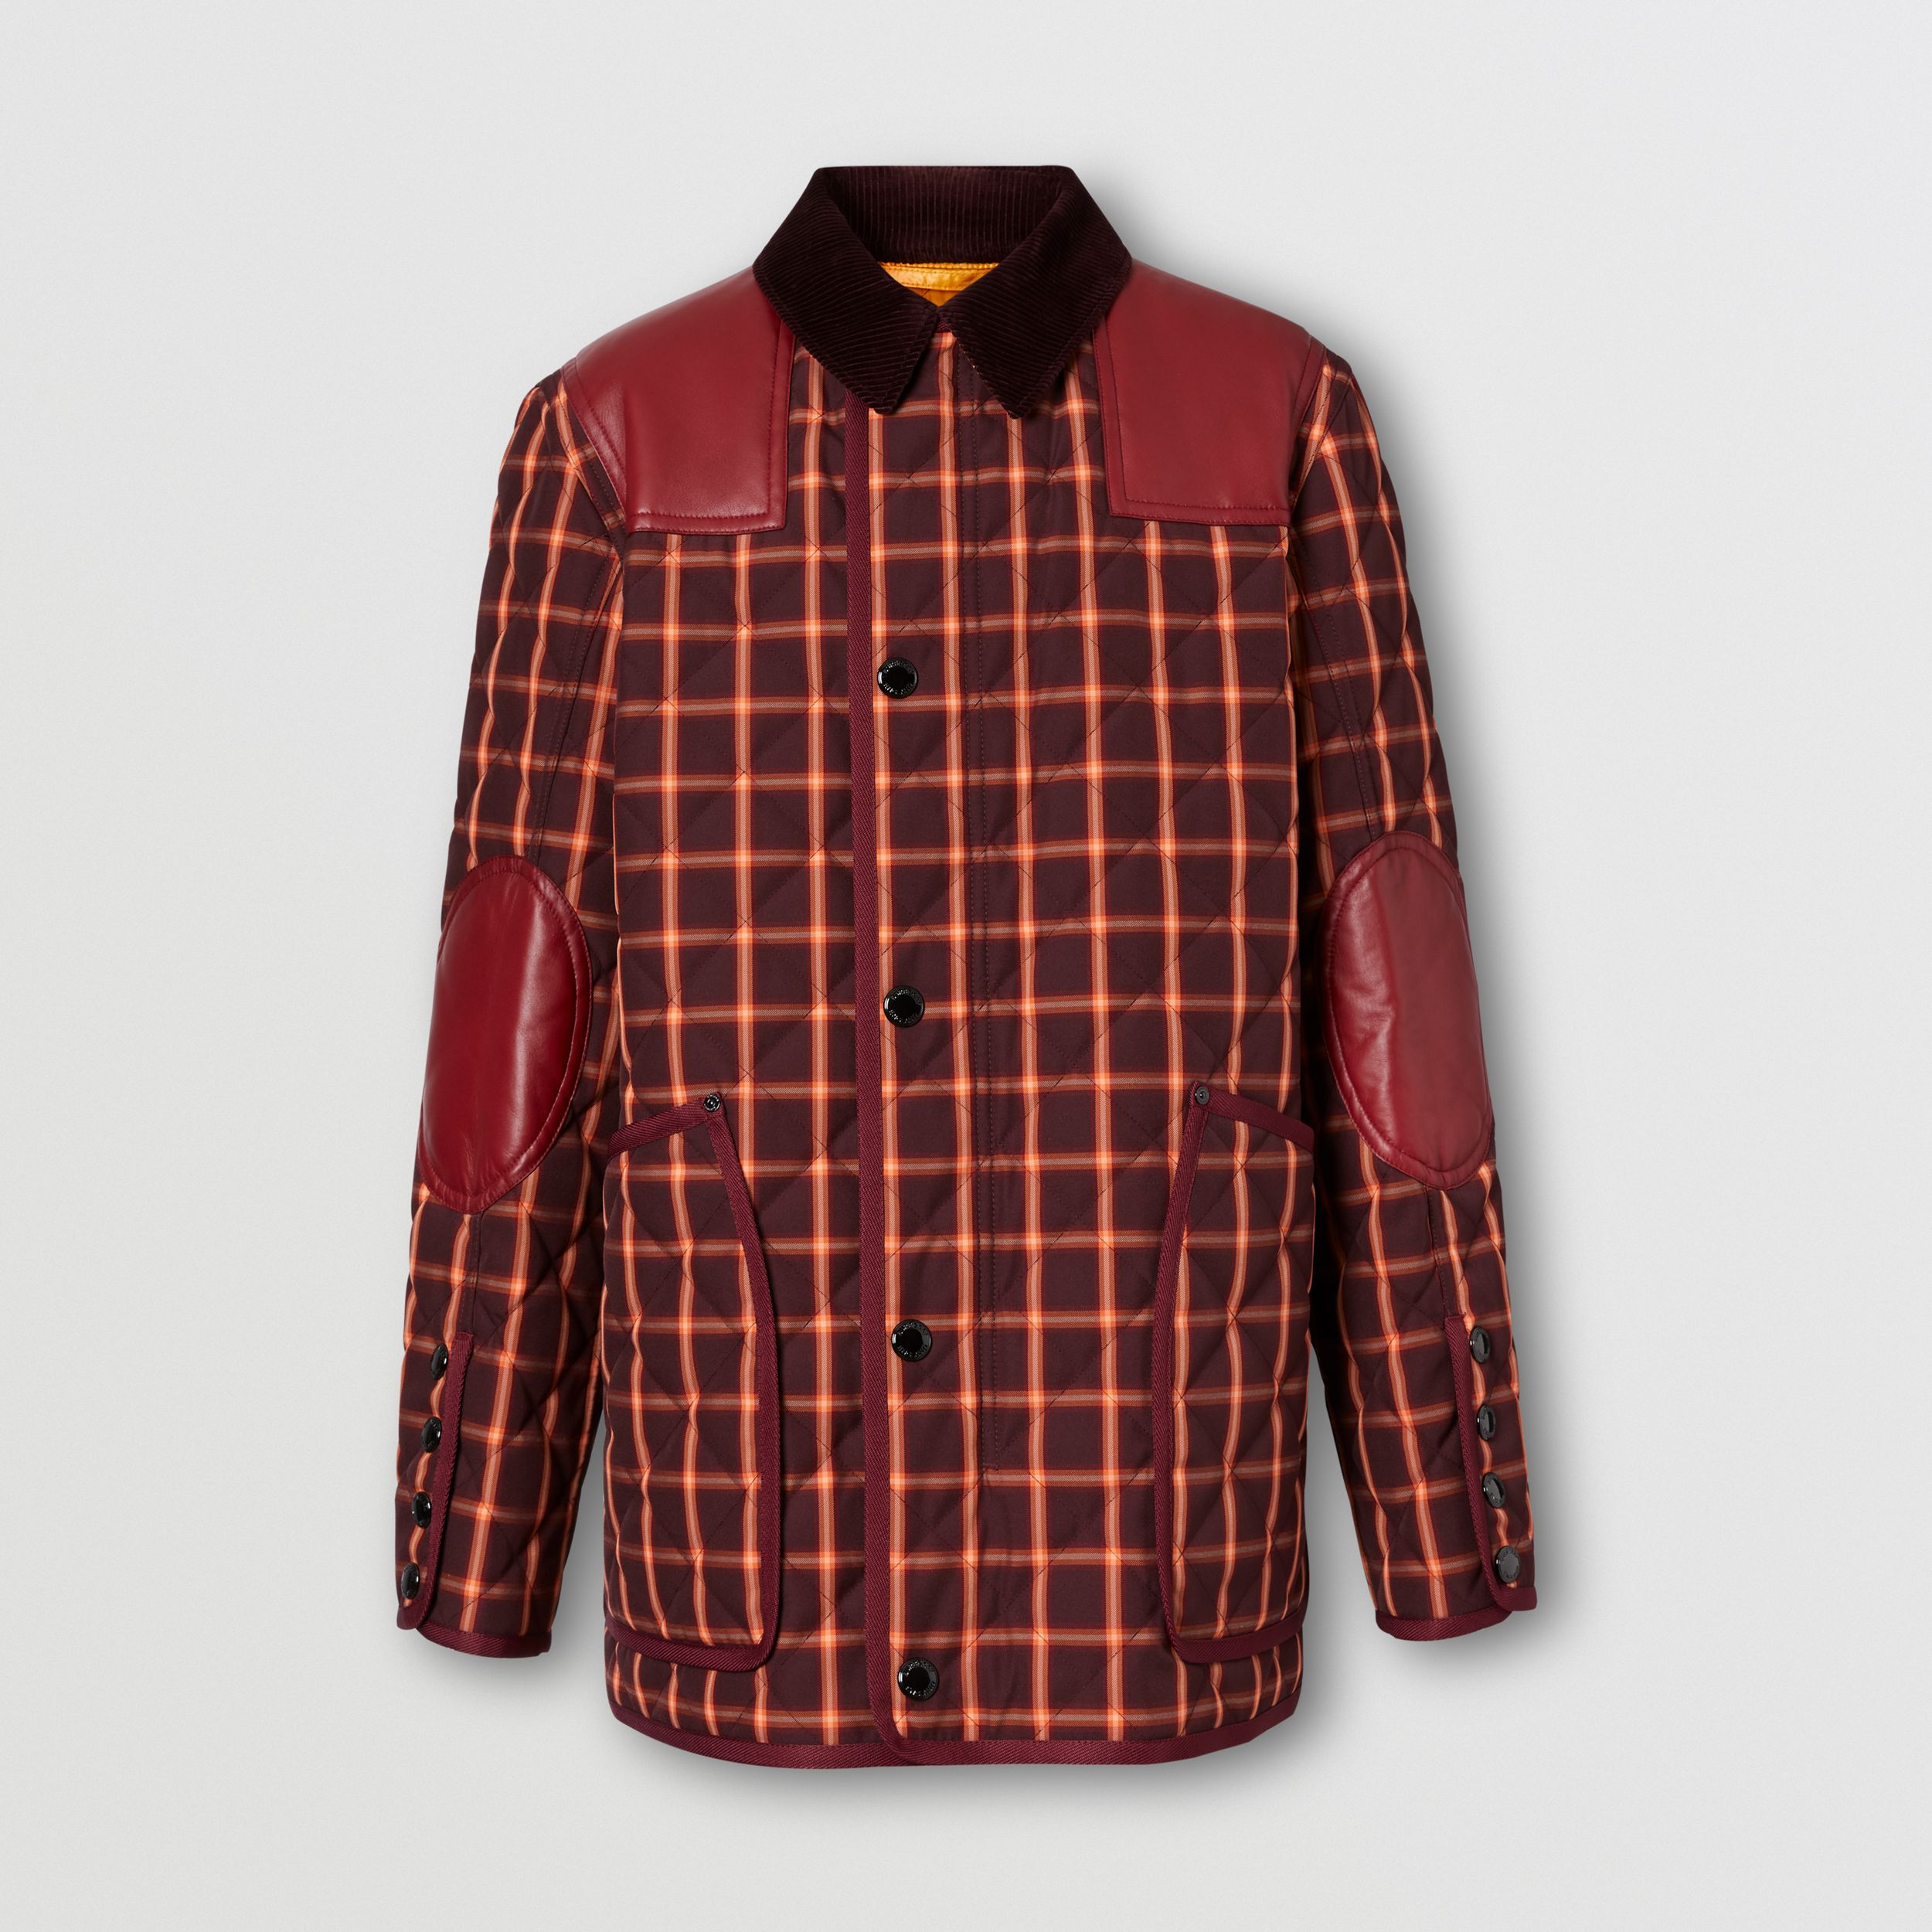 Lambskin Trim Check Technical Cotton Barn Jacket in Burgundy | Burberry - 4